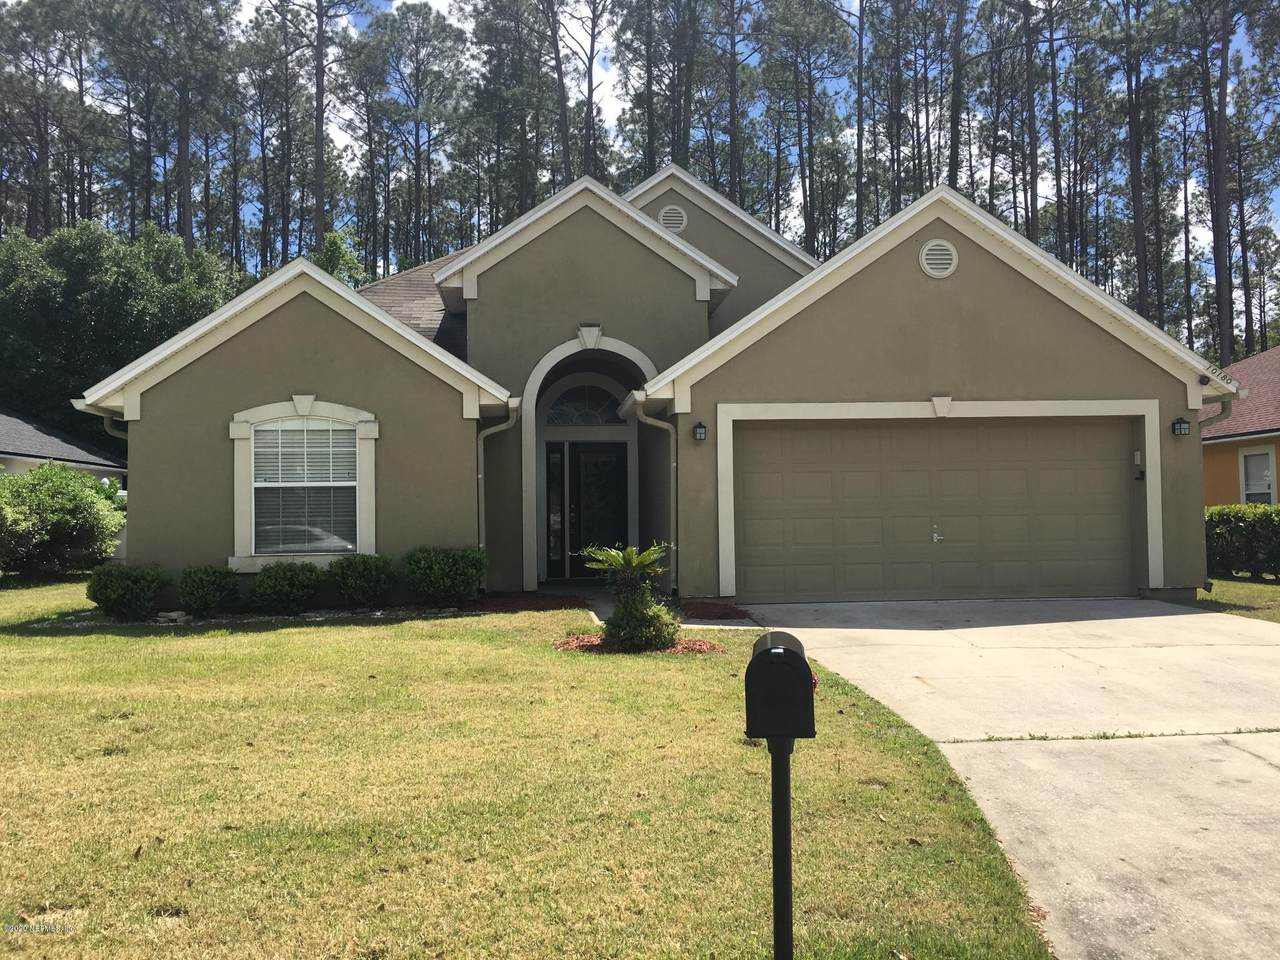 10180 Meadow Point Dr - Photo 1